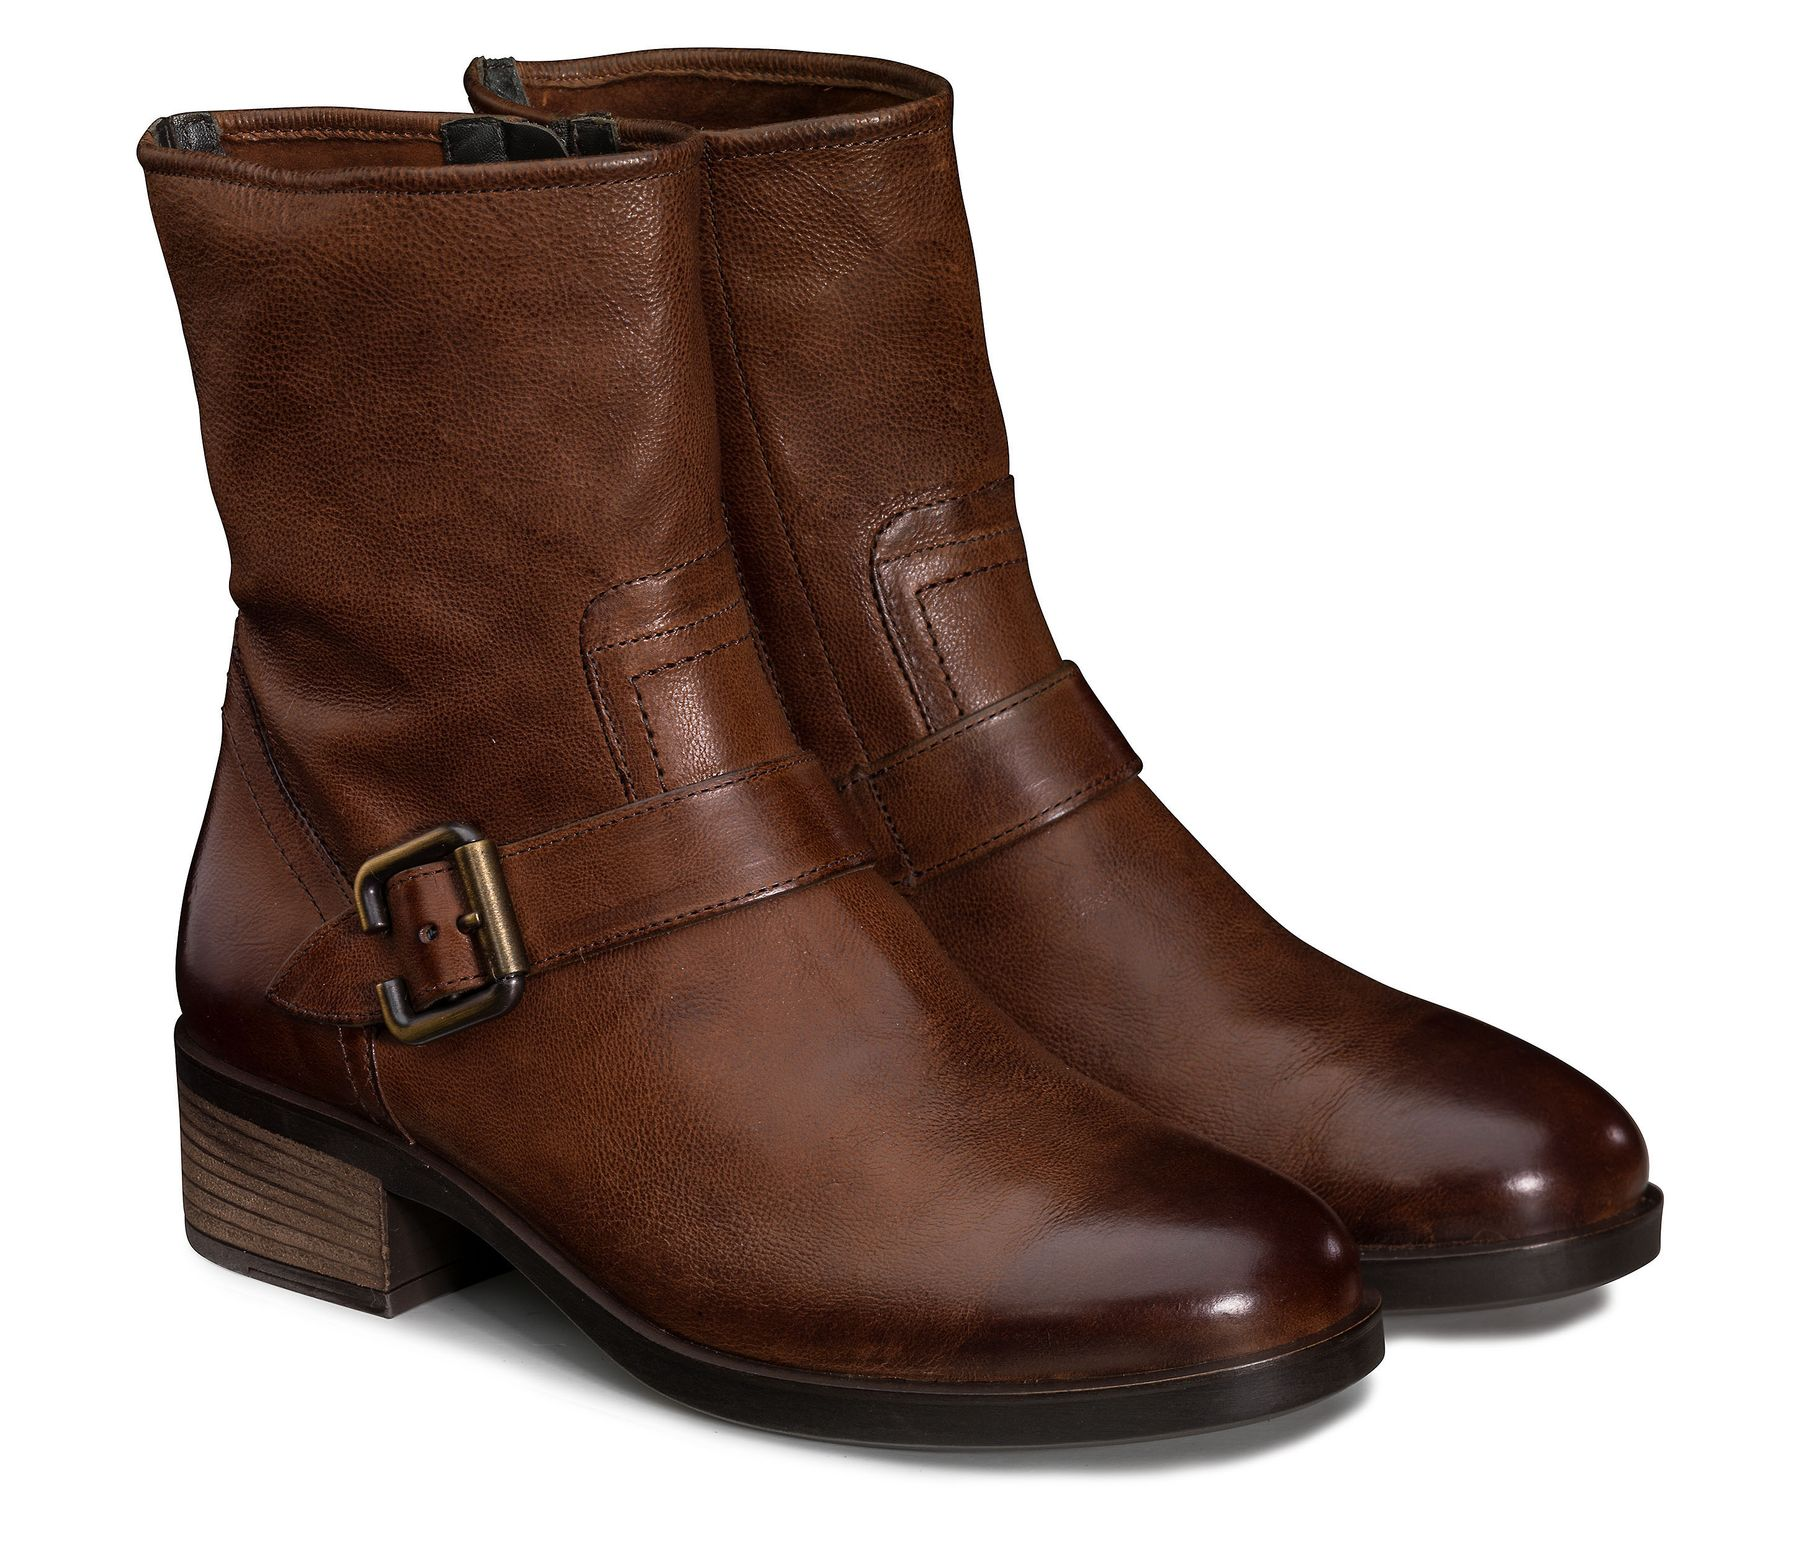 Hip Boots in Brown Paul Green